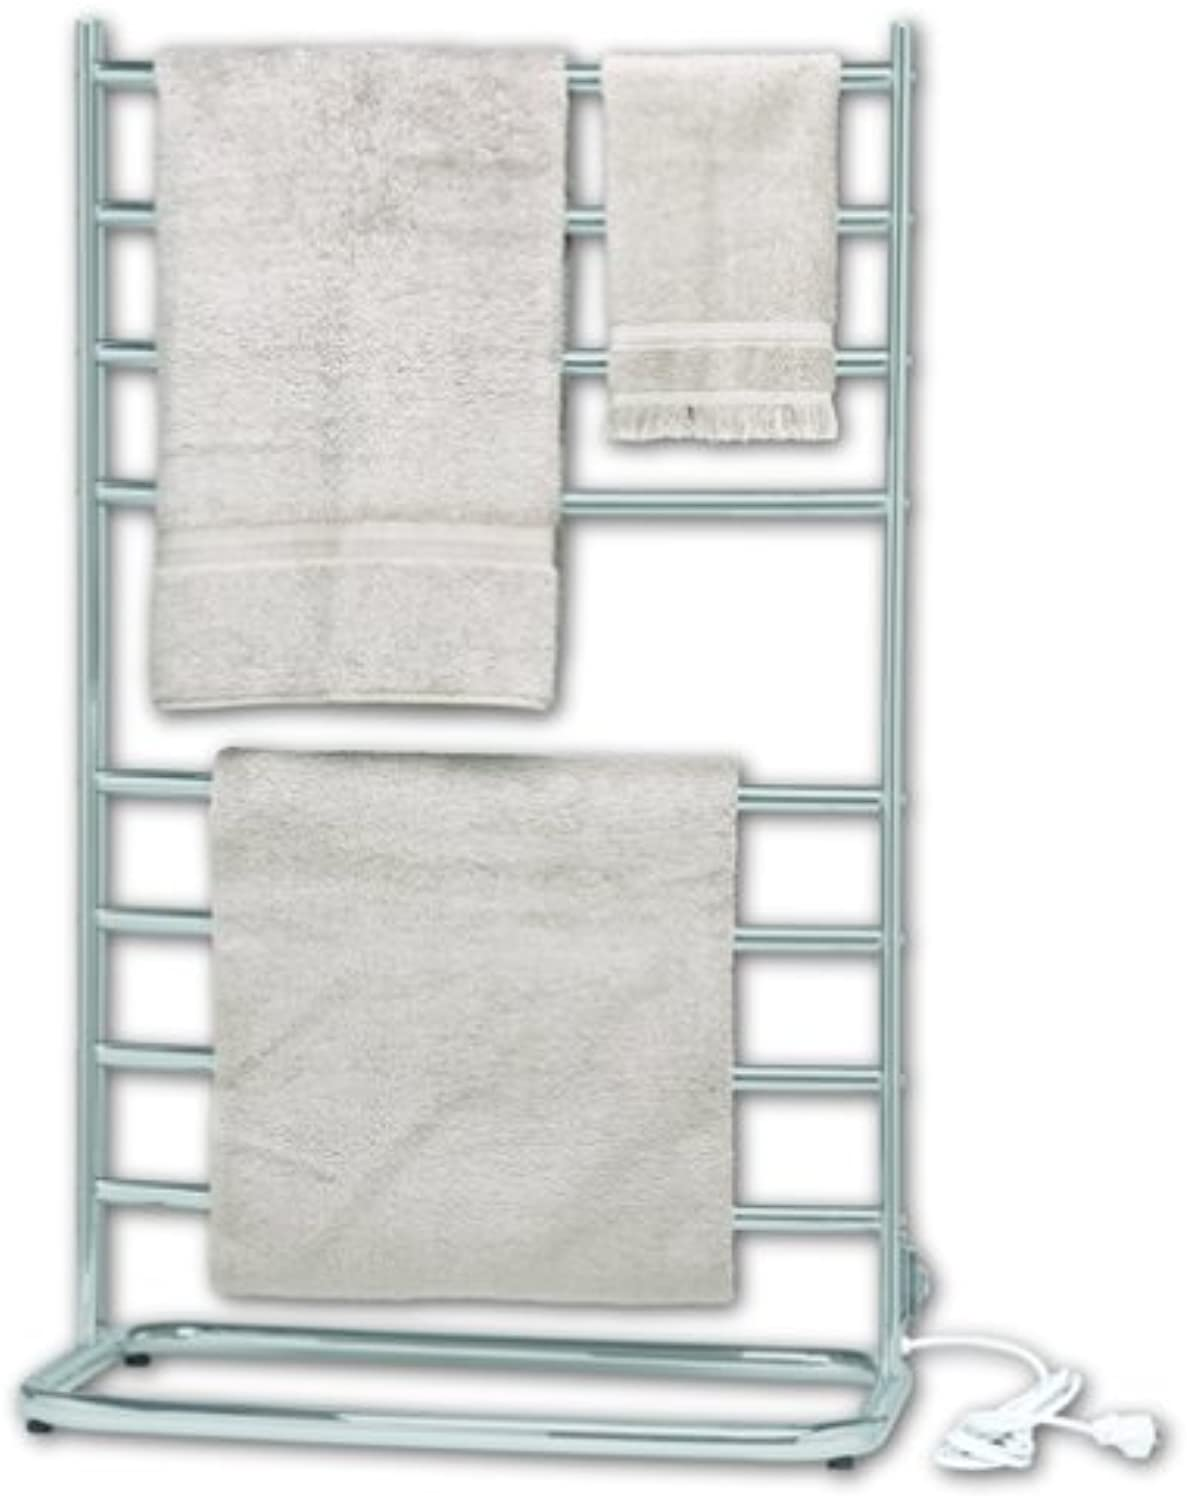 Warmrails WHS Hyde Park Family Size Floor Standing Towel Warmer, Nickel Finish